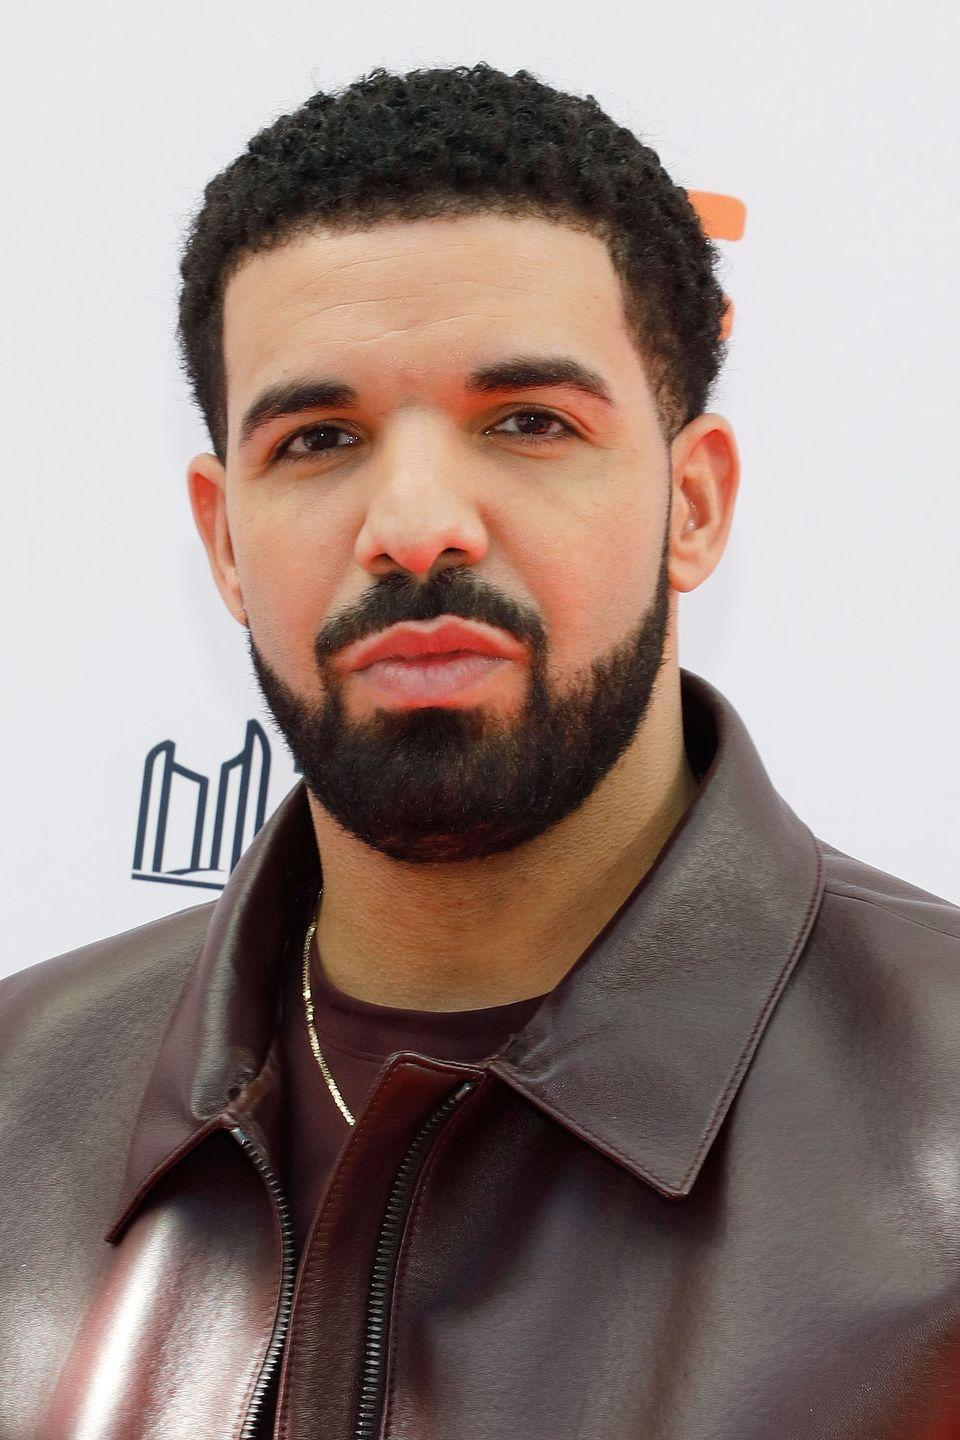 """<p>Among his <a href=""""http://www.thesmokinggun.com/backstage/hip-hop/drake"""" rel=""""nofollow noopener"""" target=""""_blank"""" data-ylk=""""slk:list of requests while on tour"""" class=""""link rapid-noclick-resp"""">list of requests while on tour</a>, Drake's weirdest is four dozen natural-scented incense sticks. Less surprising: a *ton* of alcohol, including bottles of Hennessy or Courvoisier, Patron Silver Tequila, Grey Goose Vodka, Jack Daniels, and Heineken.</p>"""